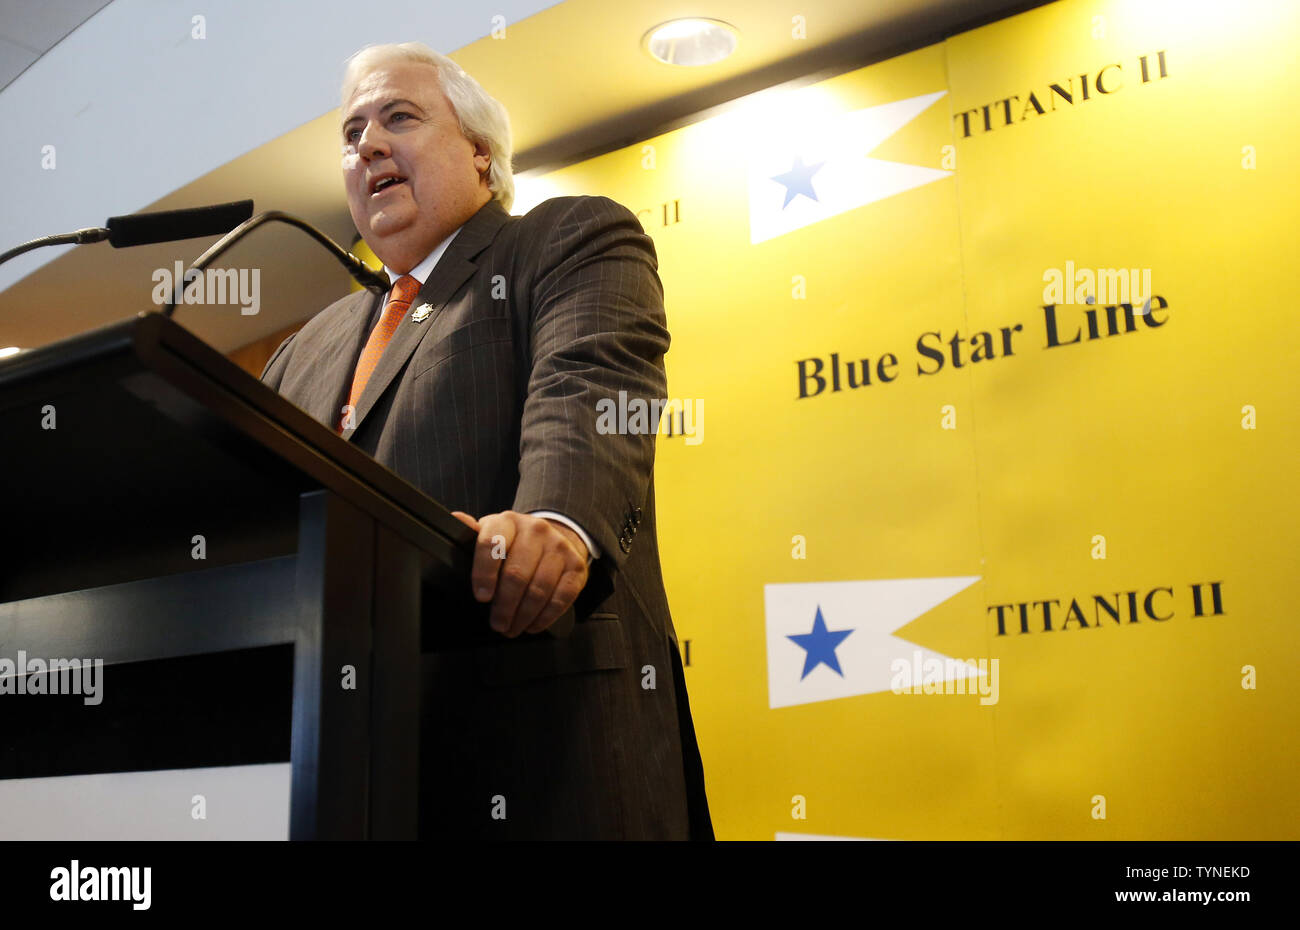 Australian billionaire and chairman of the shipping company Blue Star Line, Clive Palmer, discusses plans for the company's planned Titanic II cruise ship at the Intrepid Sea, Air & Space Museum in New York City on February 26 2013. The ship was designed by marine engineering company Deltamarin Ltd. of Raisio, Finland, and is scheduled to be completed by 2016 by the CSC Jinling Shipyard Co. in China.    UPI/John Angelillo - Stock Image